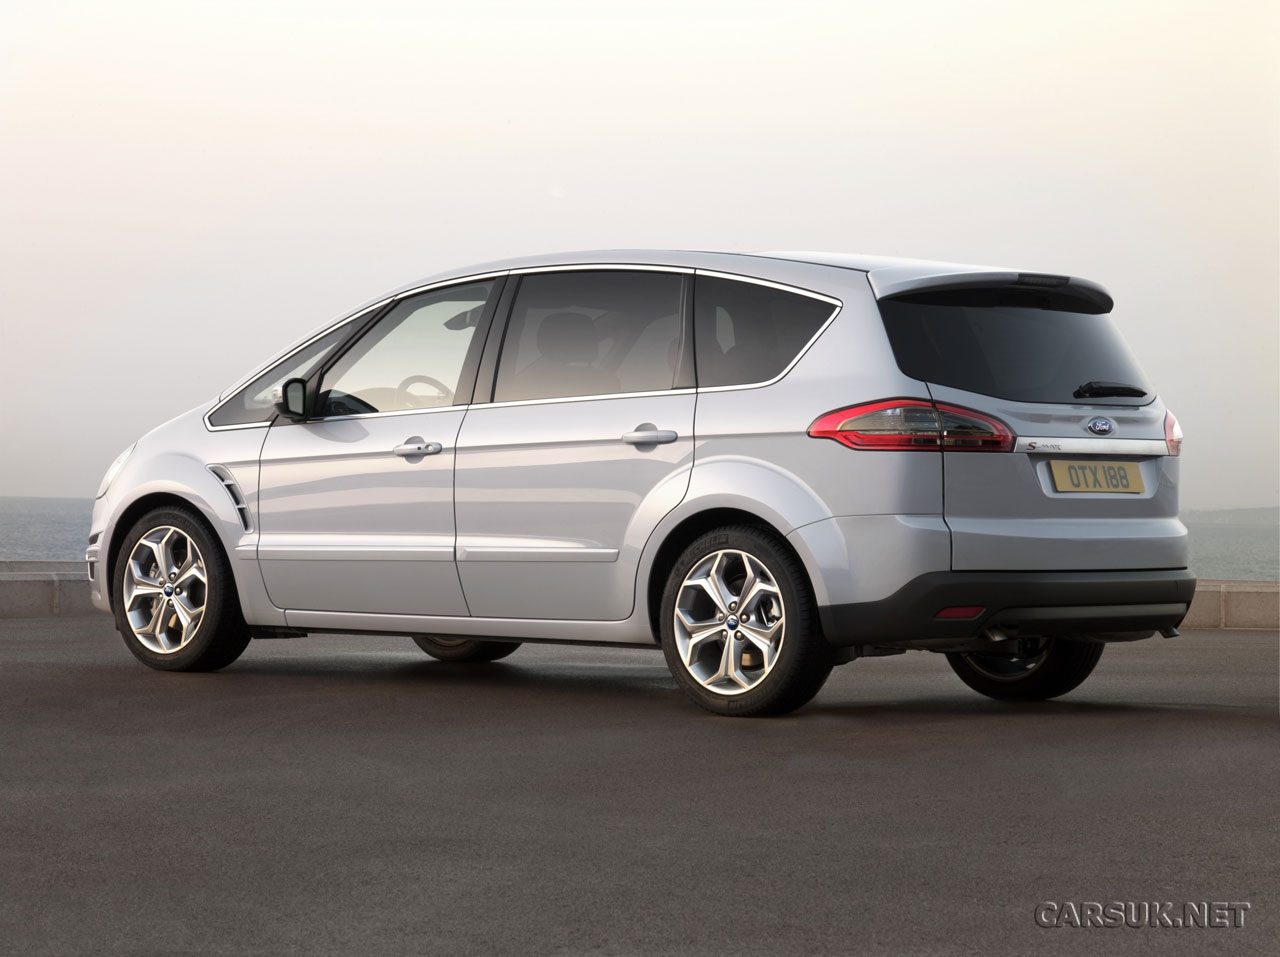 Ford s-max photo - 3